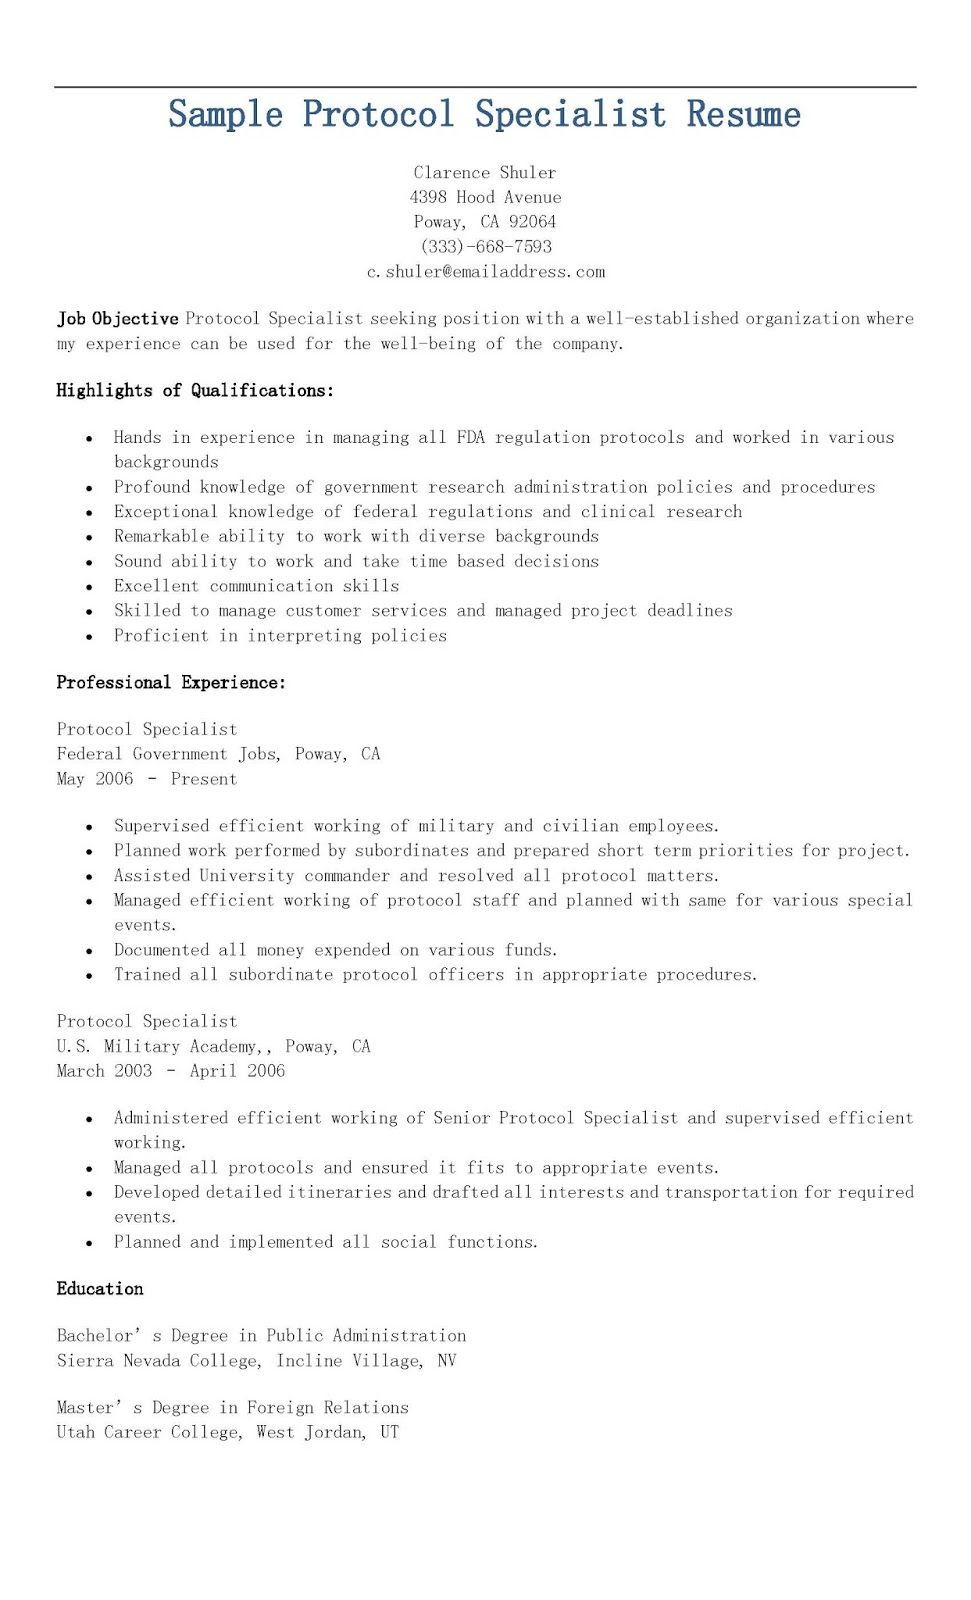 Sample Protocol Specialist Resume | resame | Pinterest | Homework diary